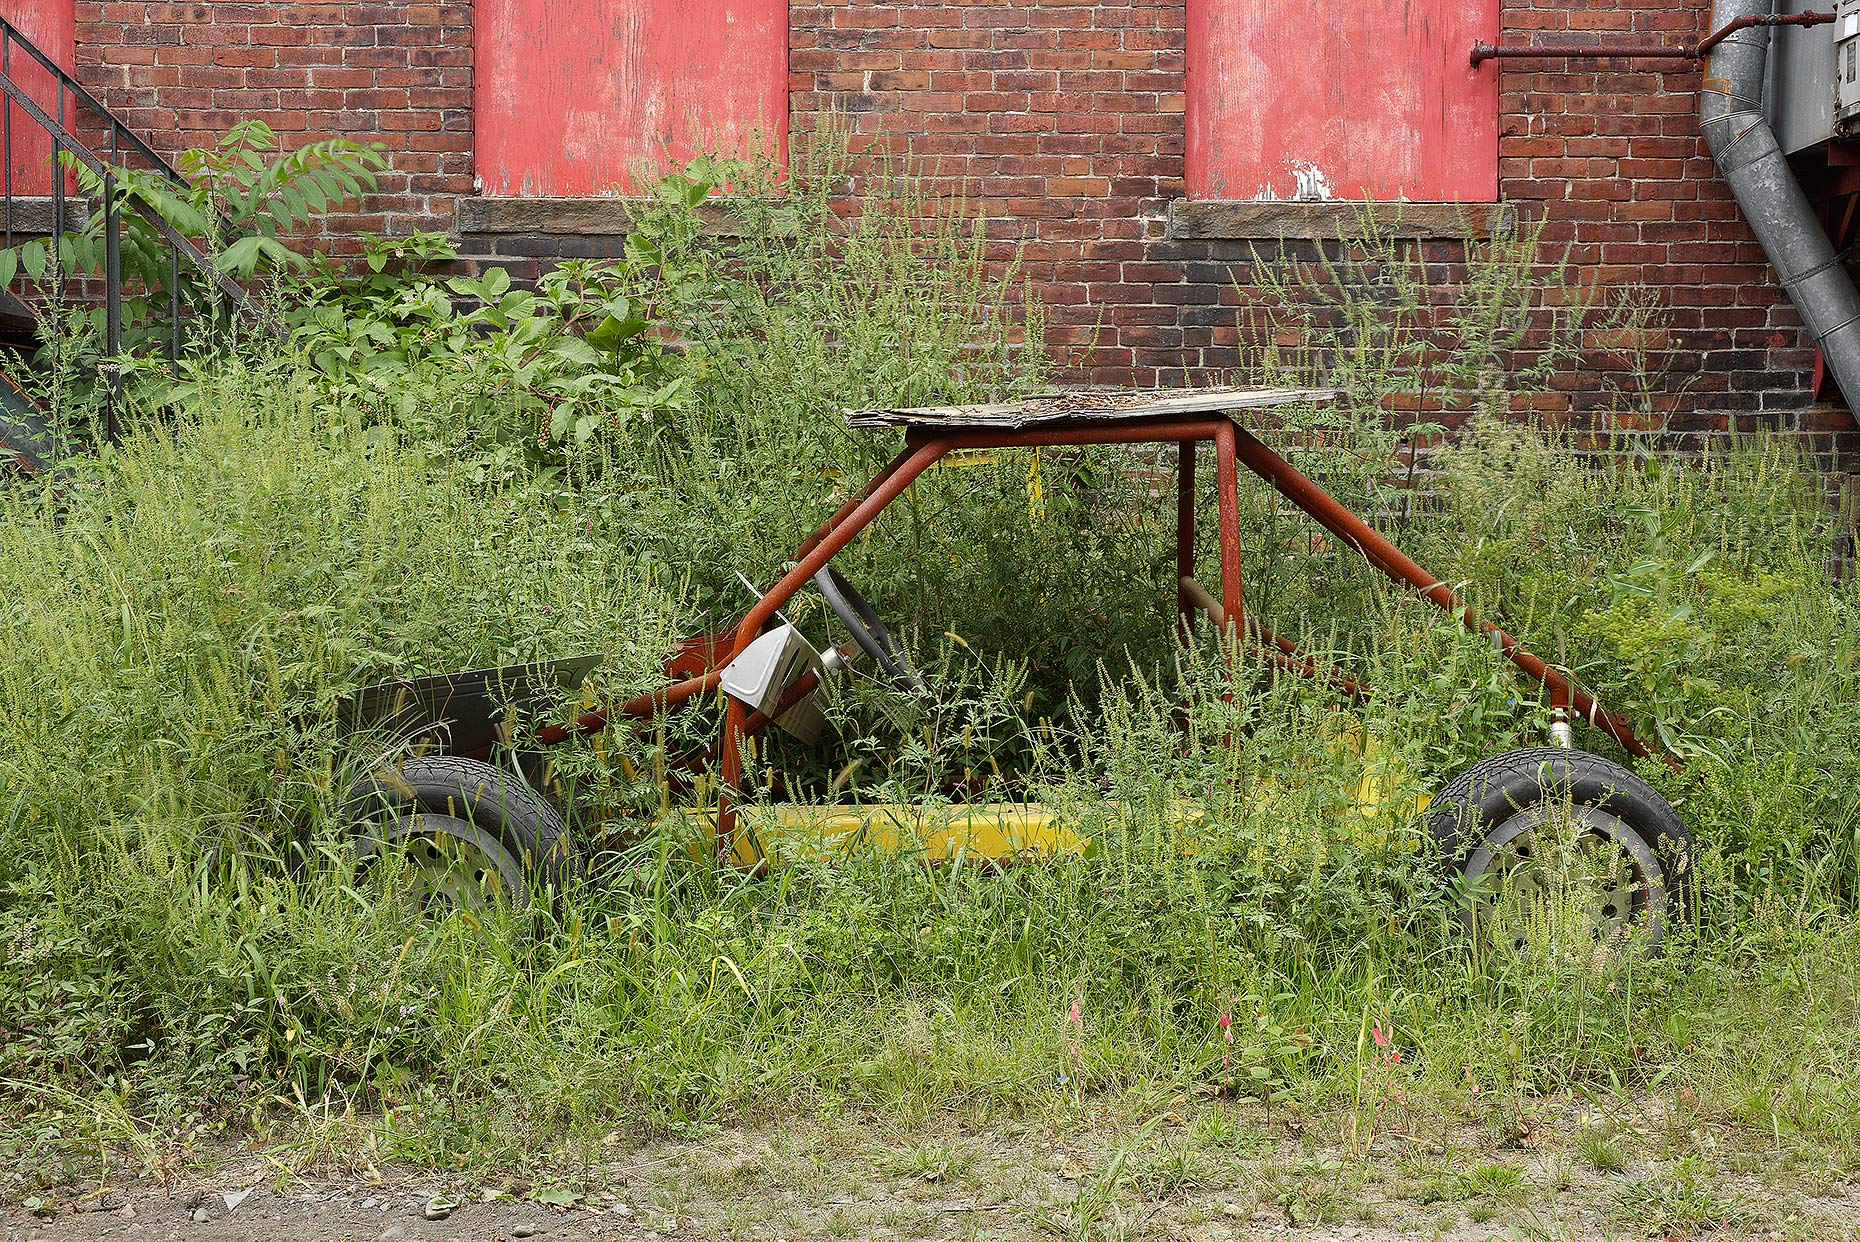 car-in-weeds